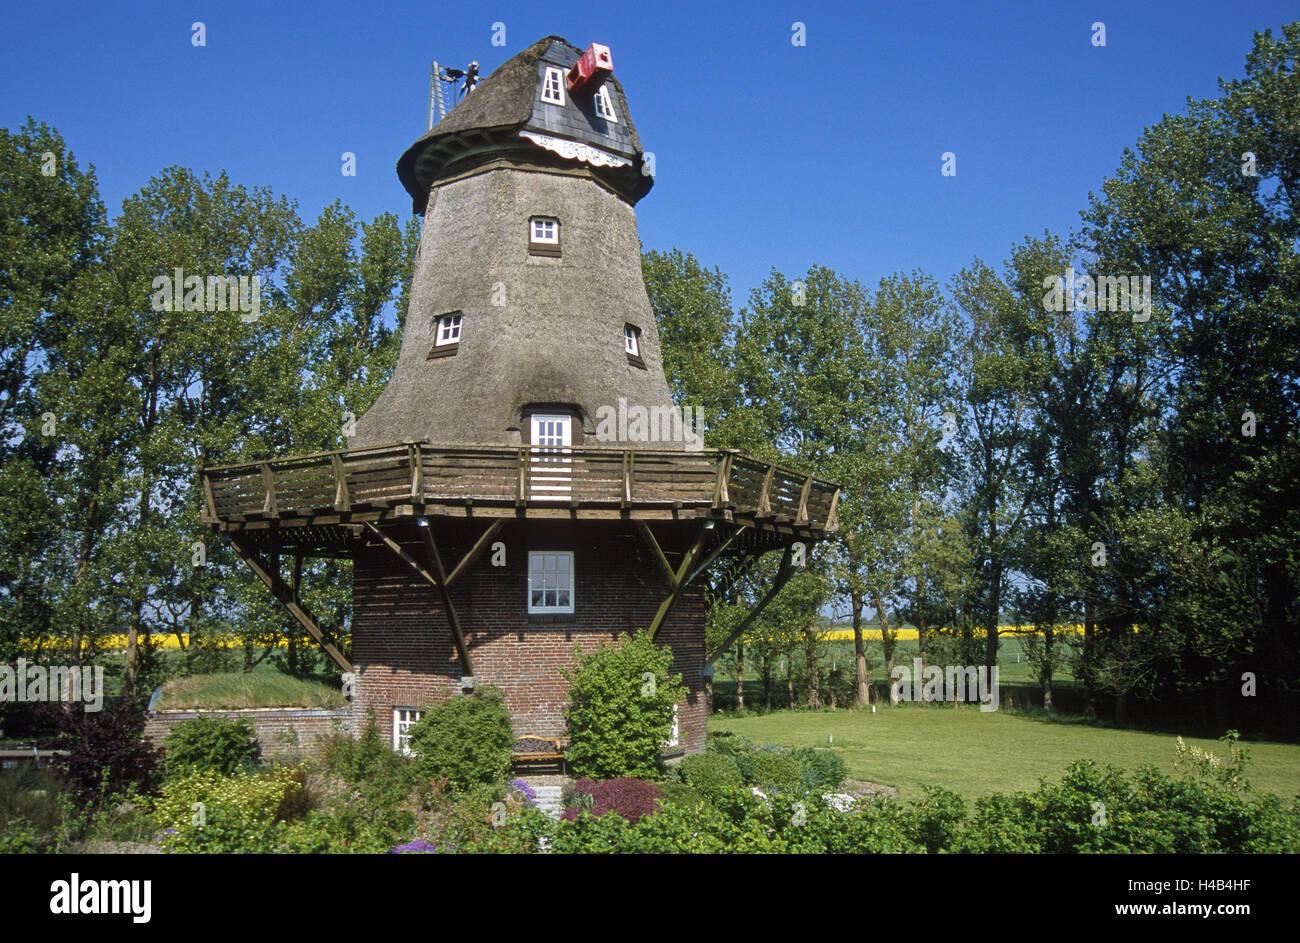 Germany, Schleswig - Holstein, peninsula Eiderstedt, cooking thing, windmill, 'Fortuna', spring, north frieze - Stock Image